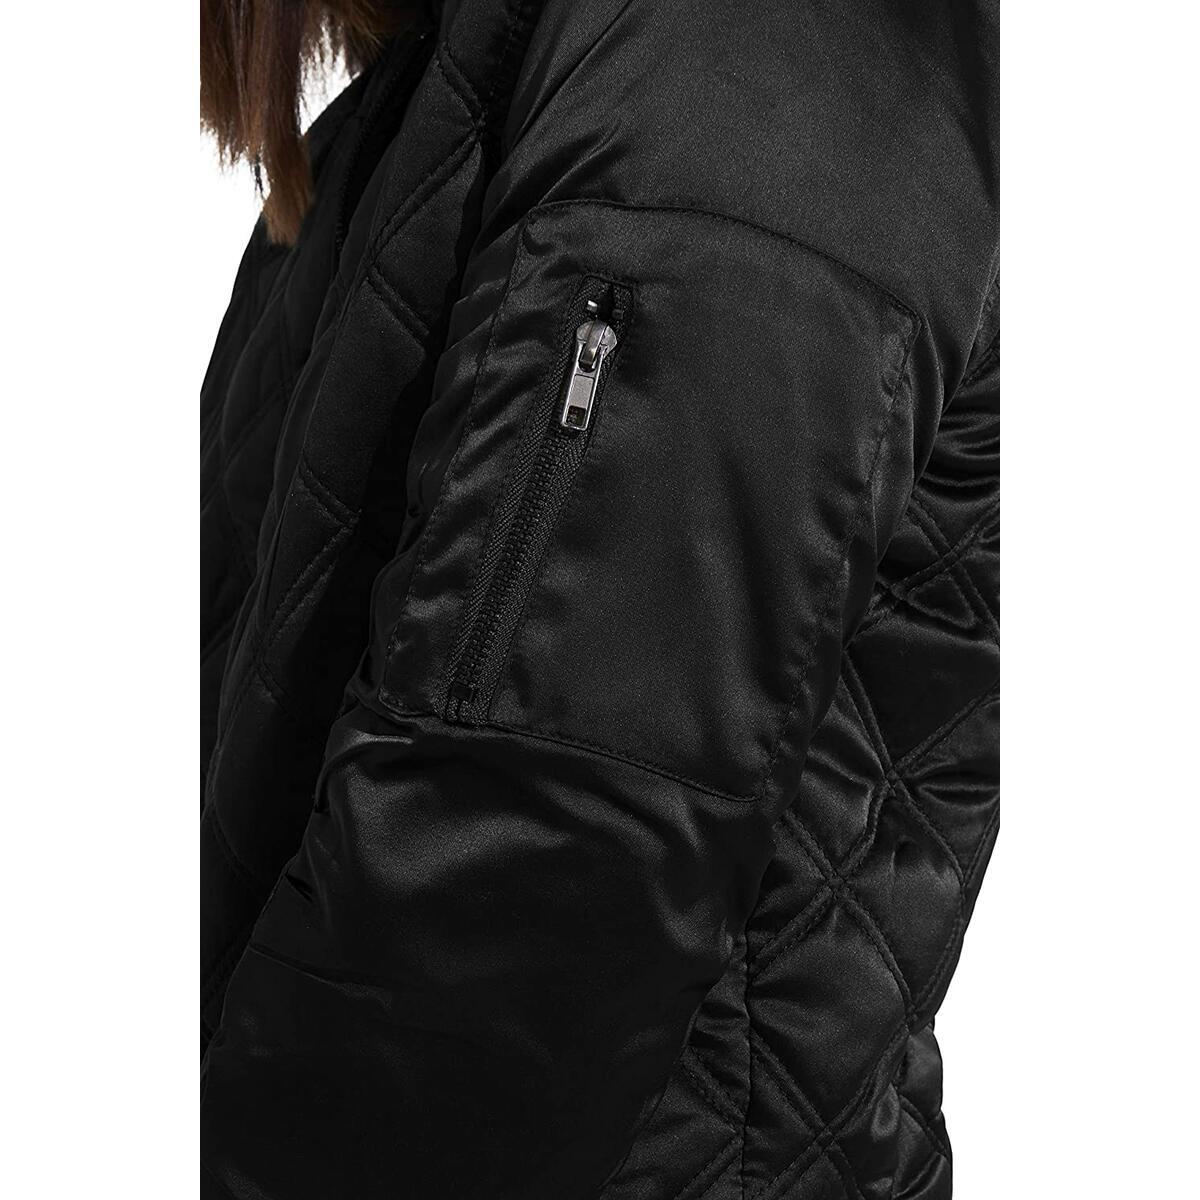 Weatherproof Womens Bomber Jacket Light Quilted Cropped Insulated Jacket